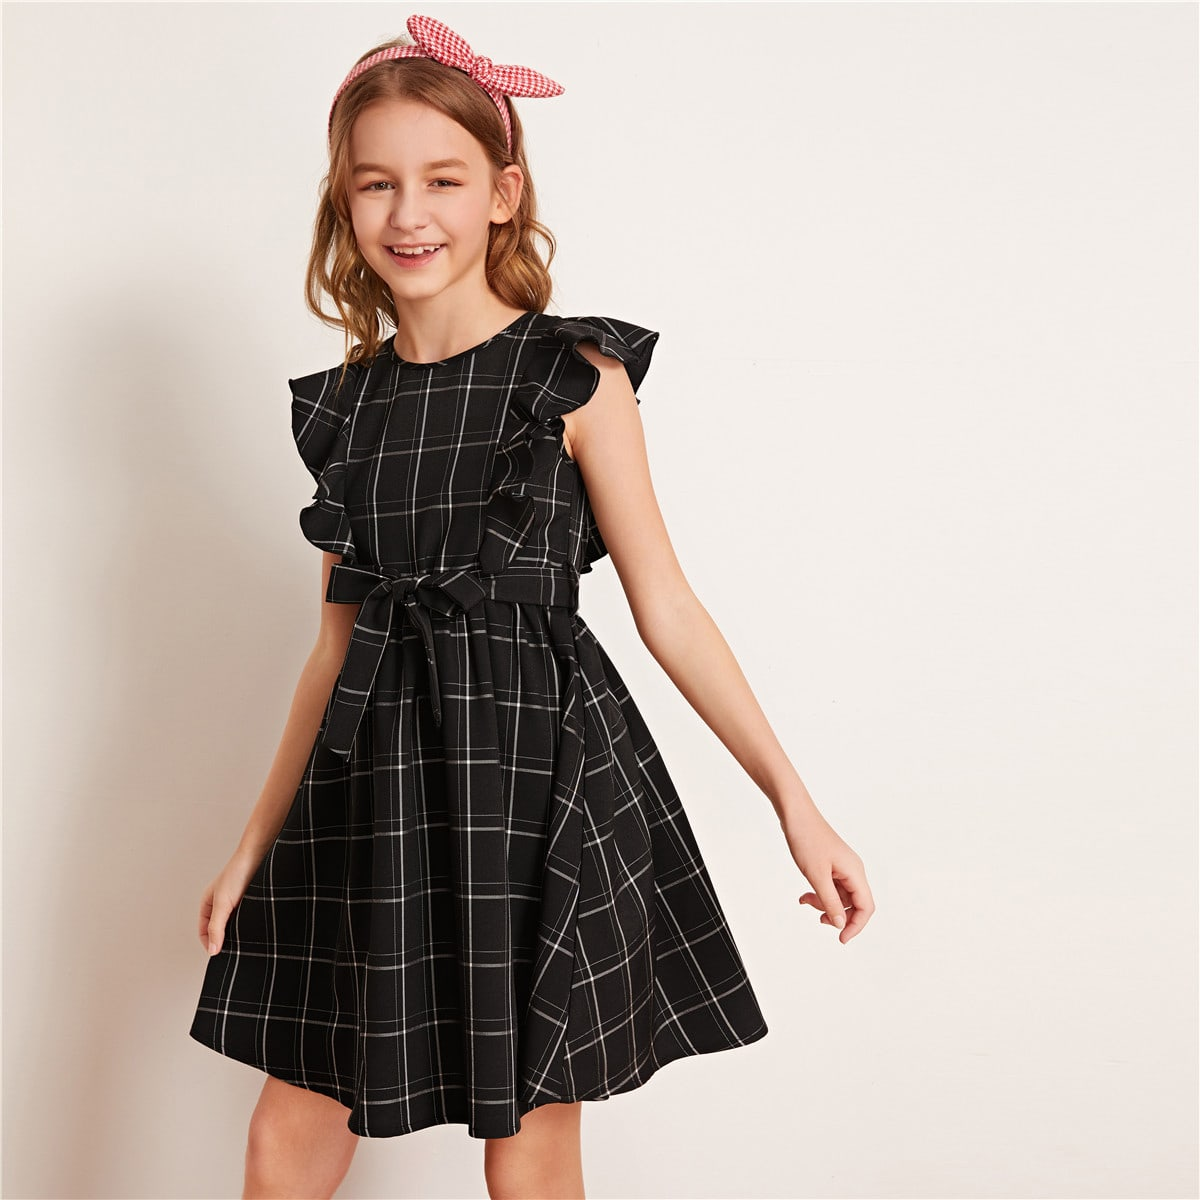 SHEIN / Girls Ruffle Armhole Belted Plaid Dress